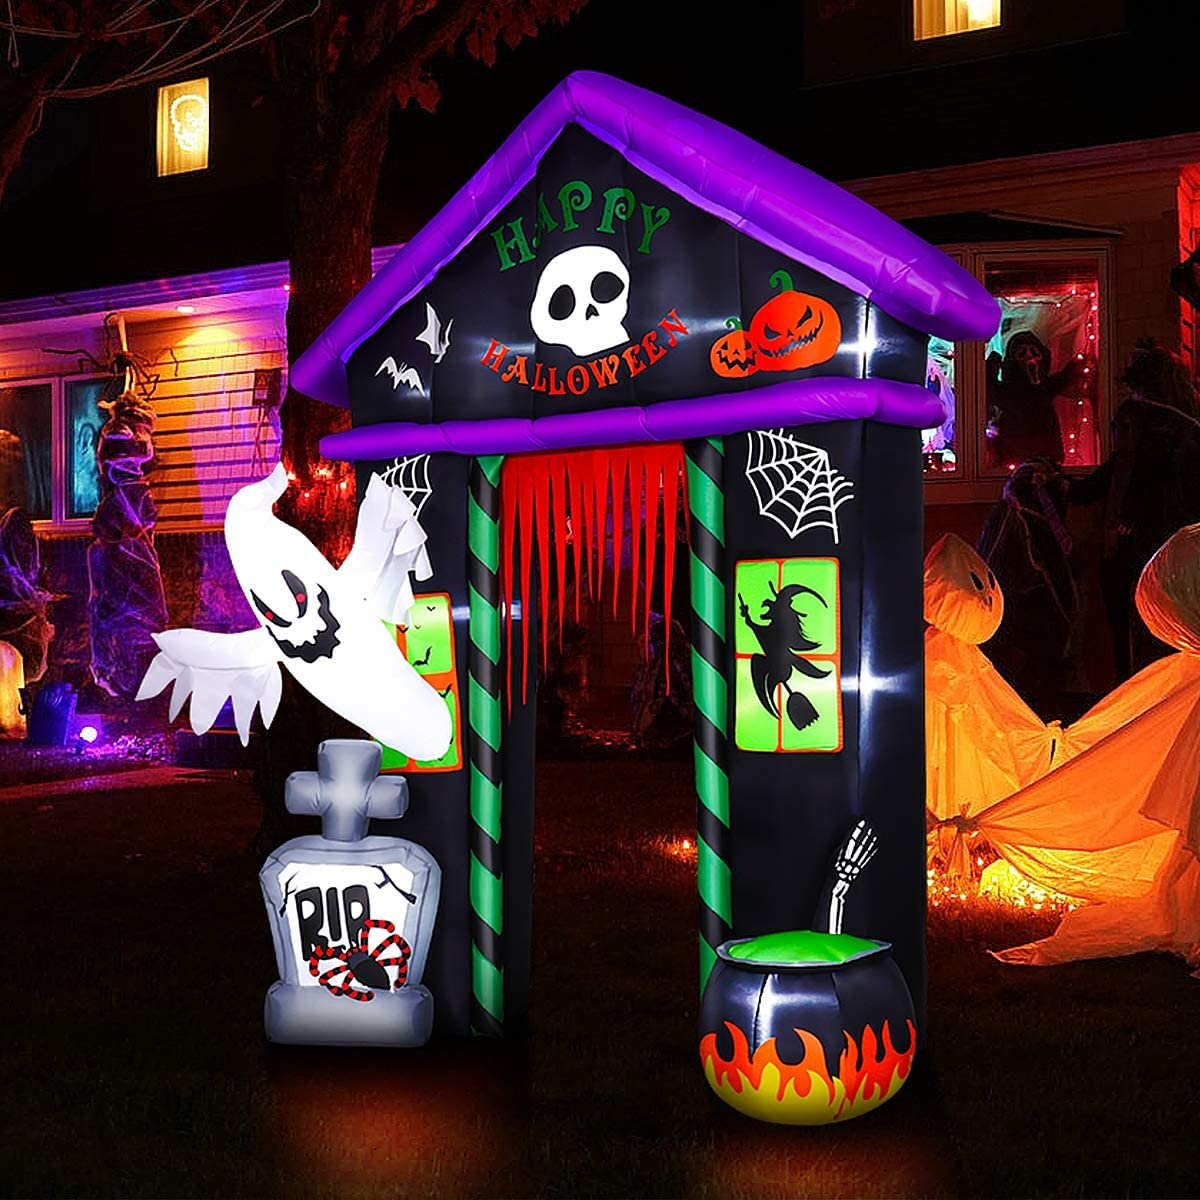 Halloween House Archway Inflatable, 9 FT Halloween Inflatable Blow Up Lighted Decor With Built-in LED Decoration for Party